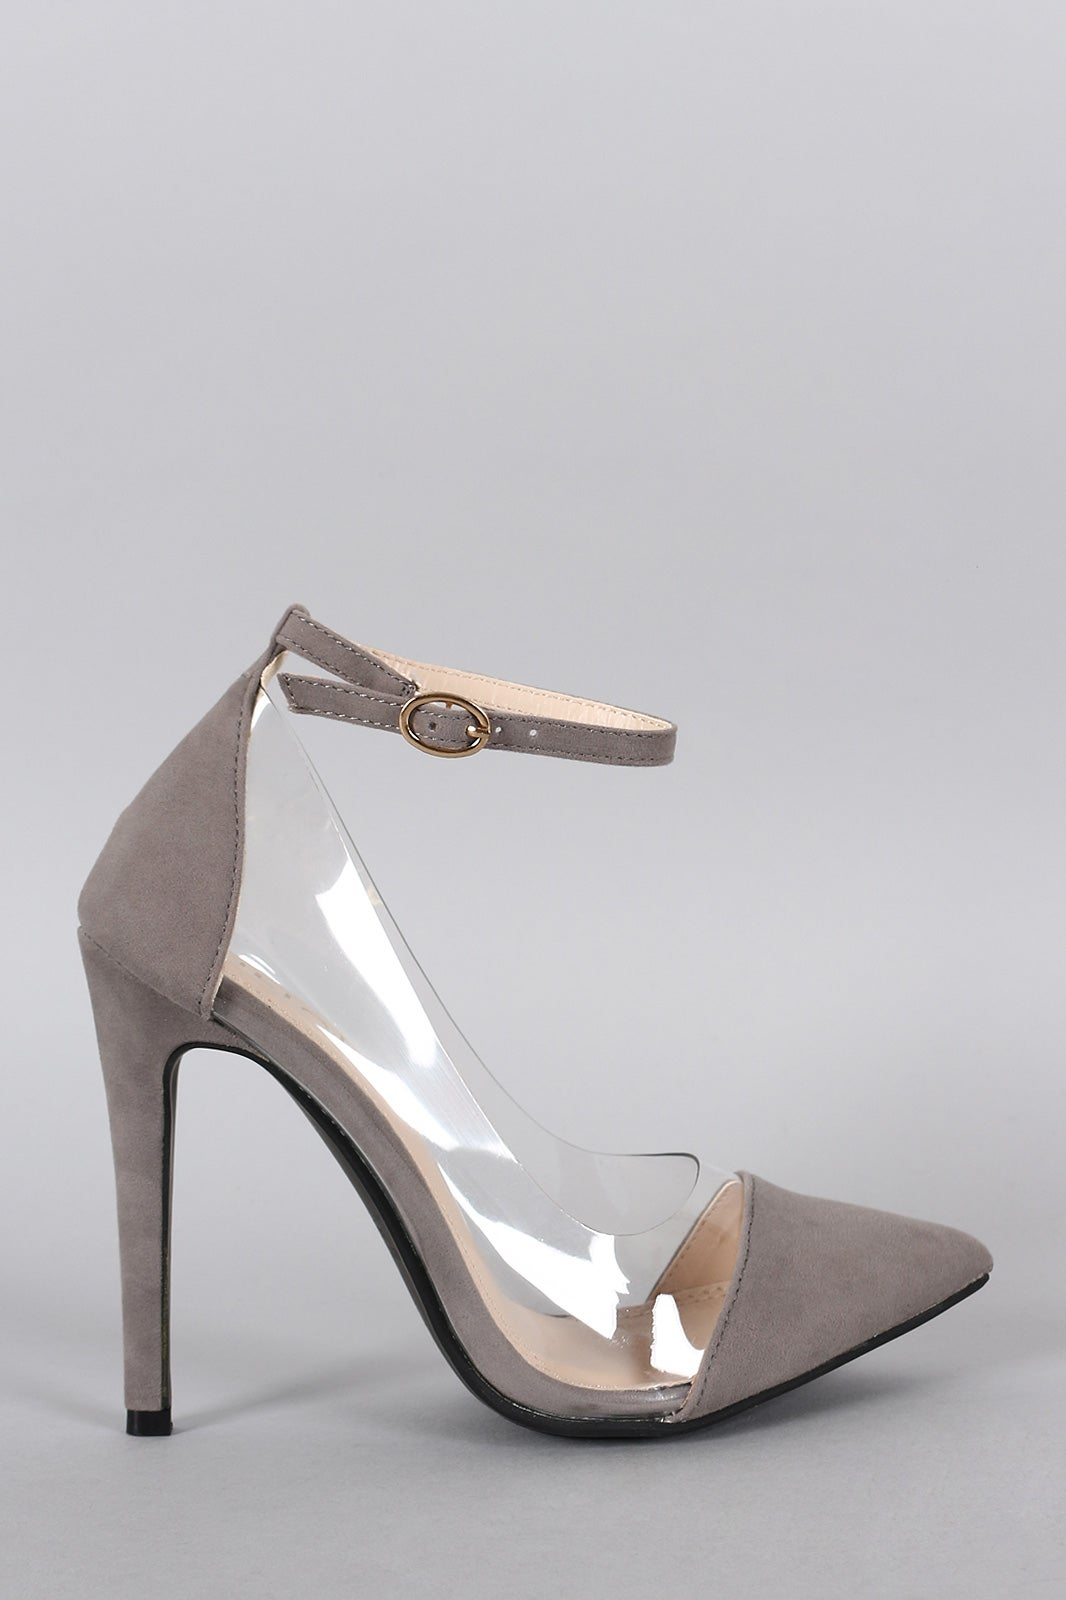 Image of Barely Basic Pumps w/ ankle strap (Grey)